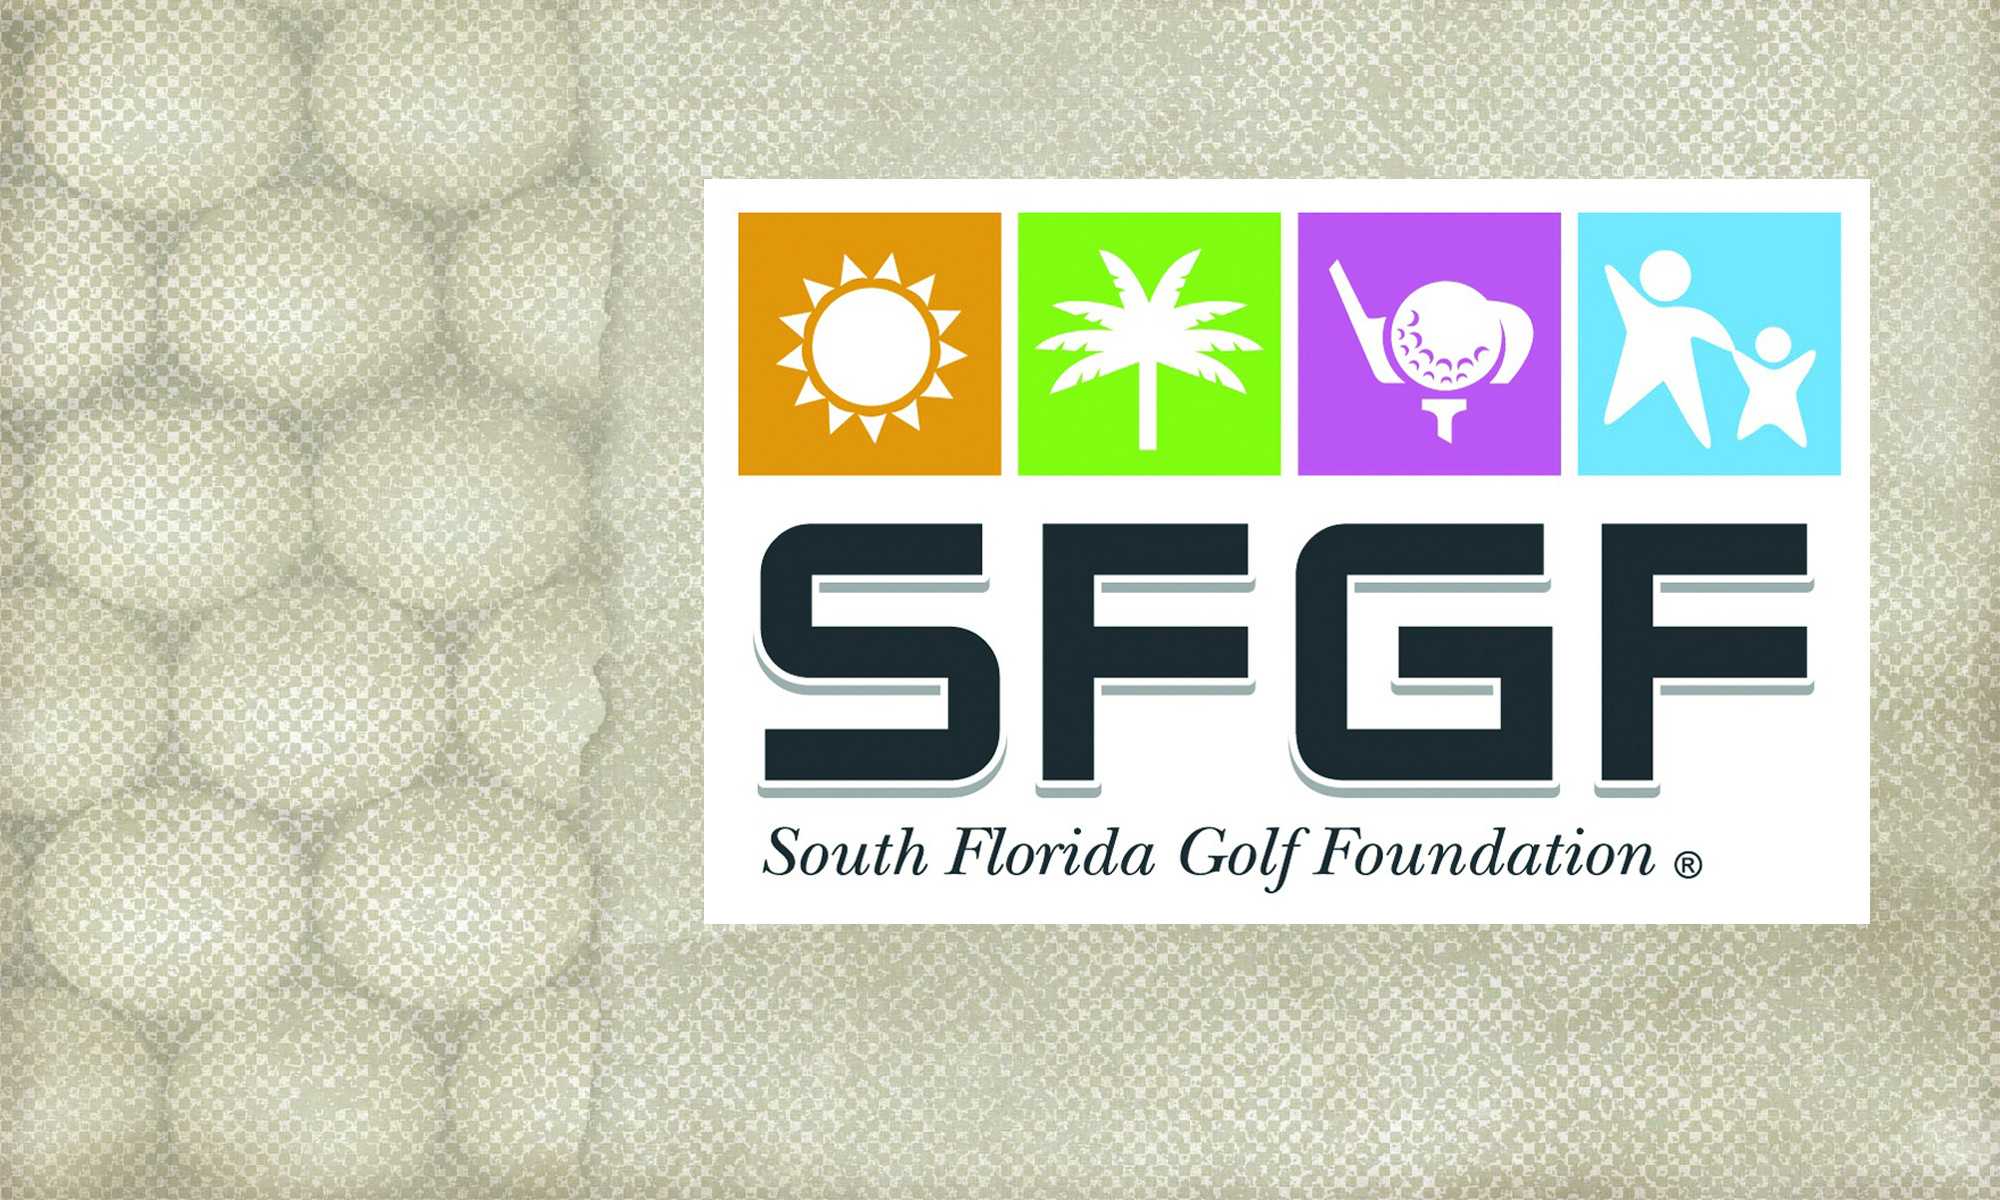 South Florida Golf Foundation